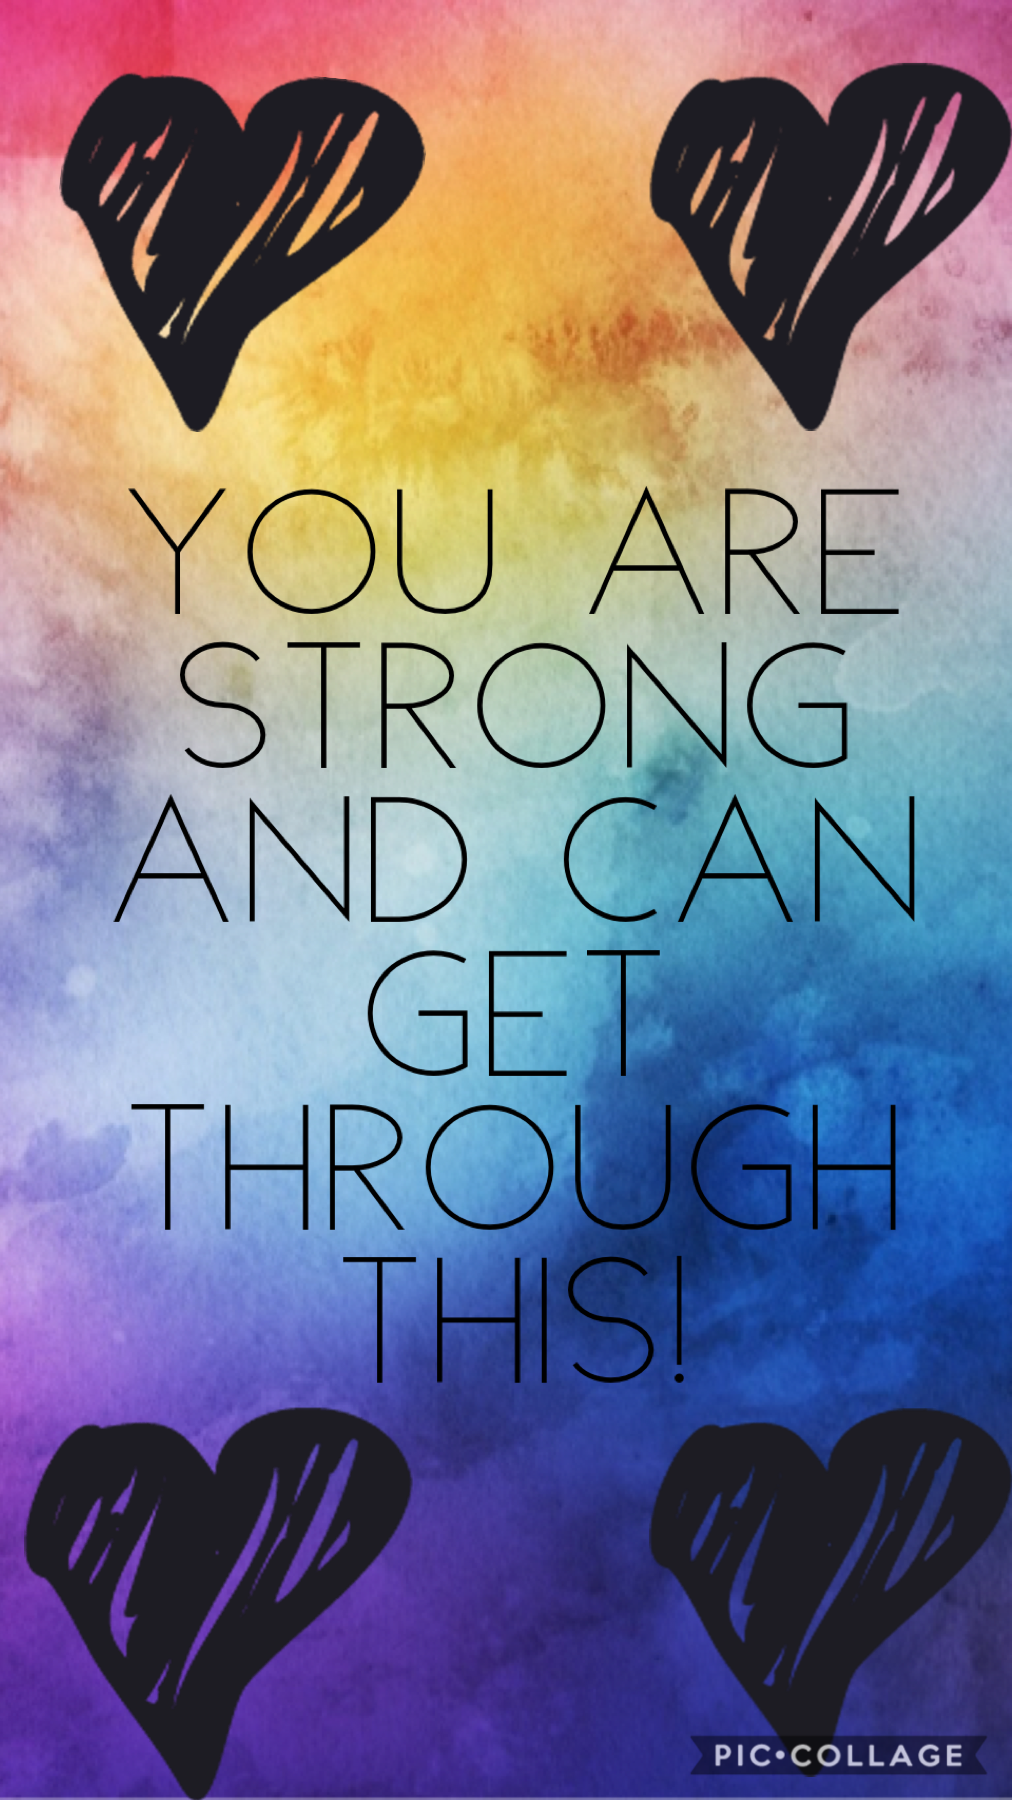 Your strong and can get through this